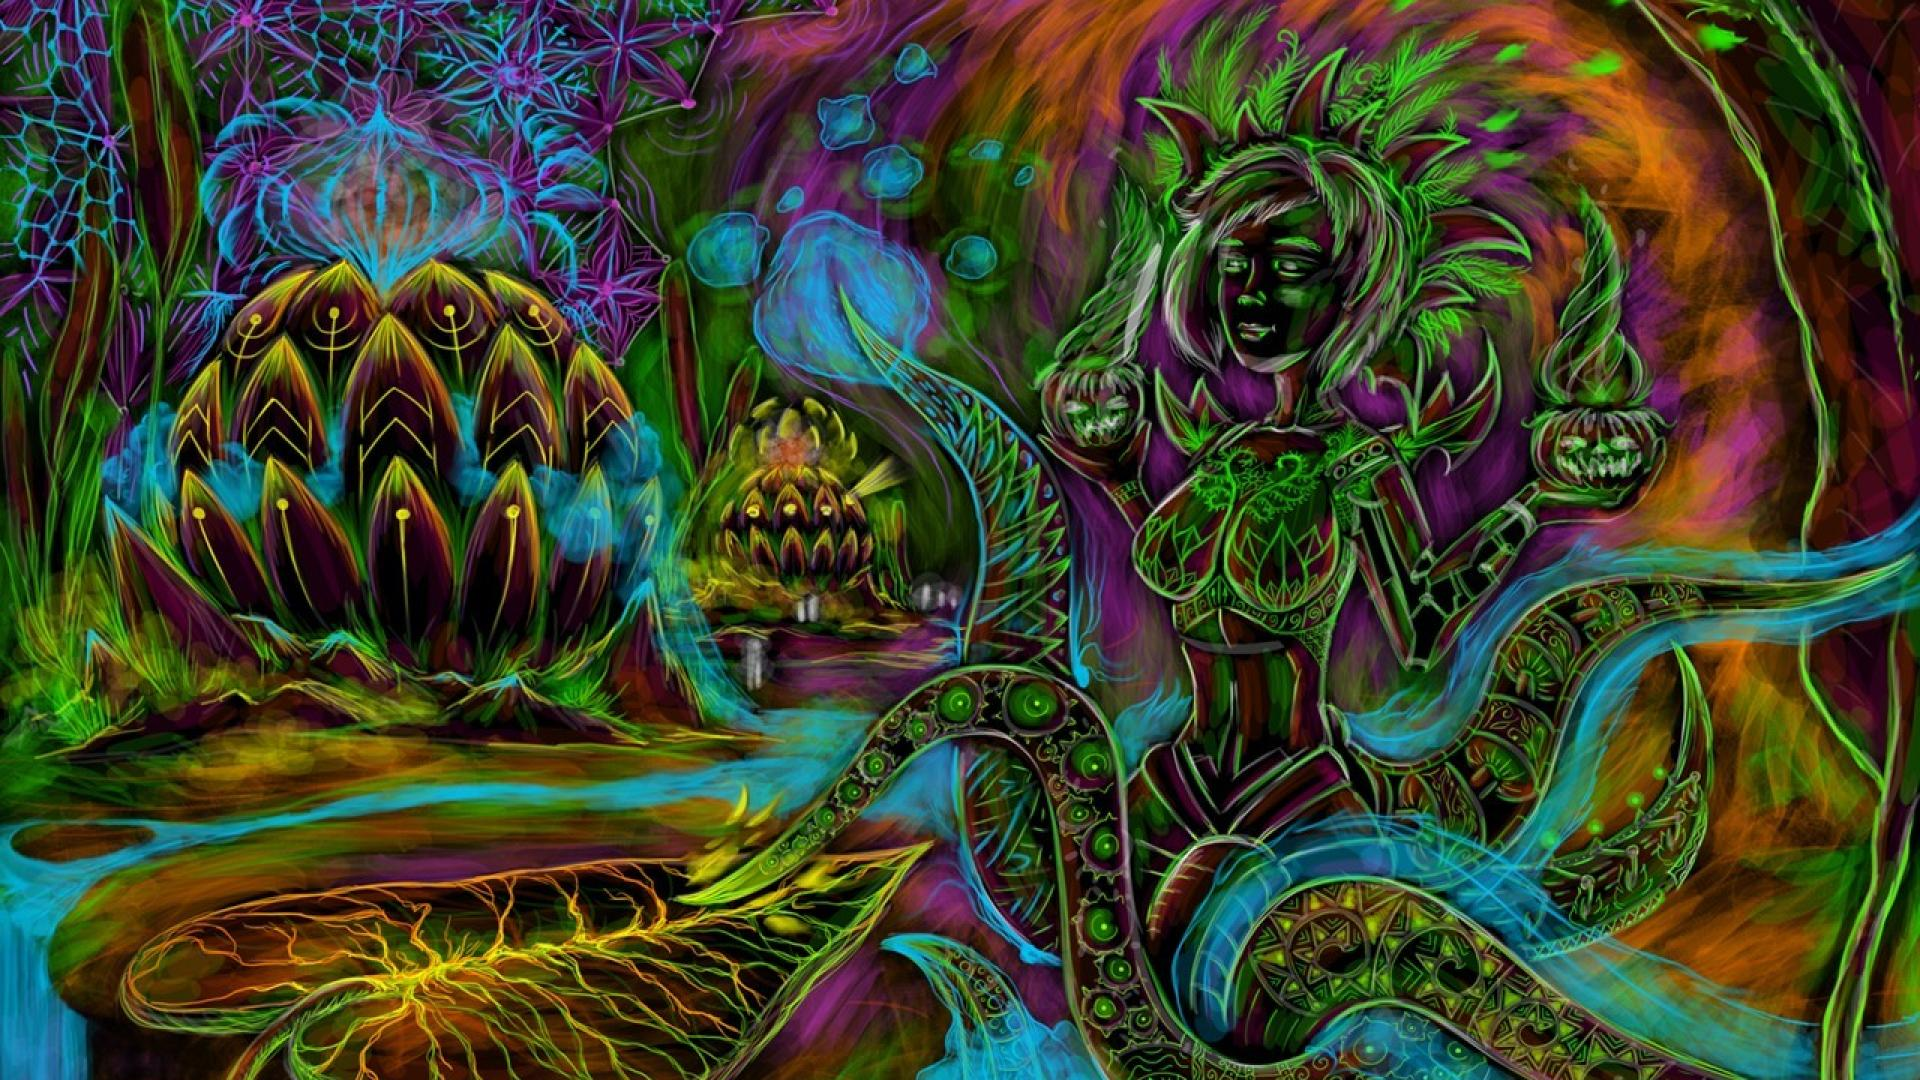 Psychedelic Wallpaper Devi kind